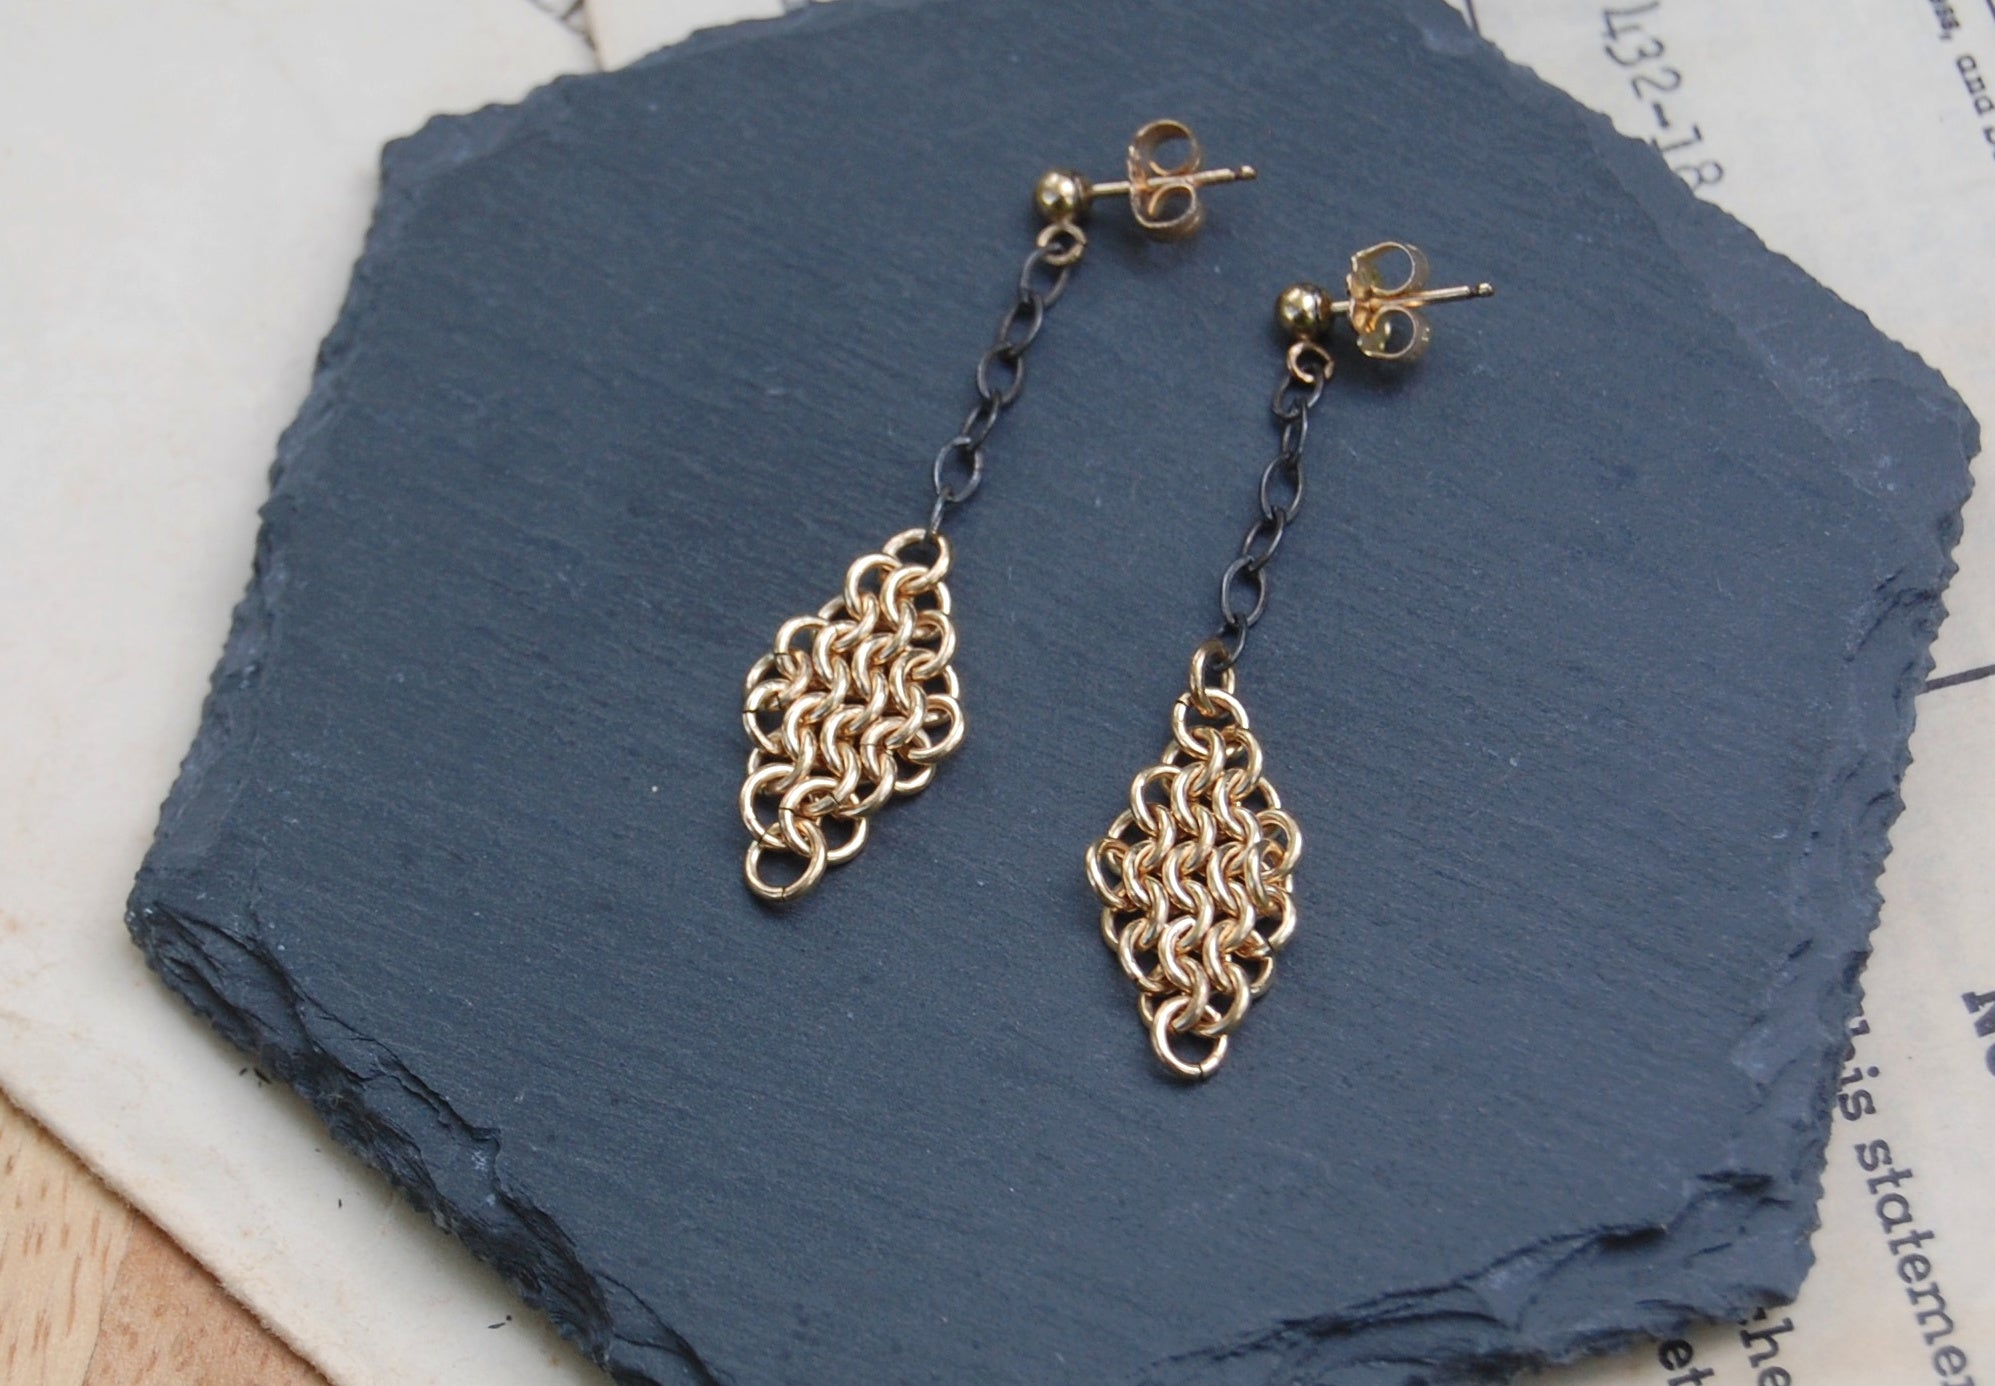 gold chain maille earrings on dark sterling silver chain from kbeau jewelry